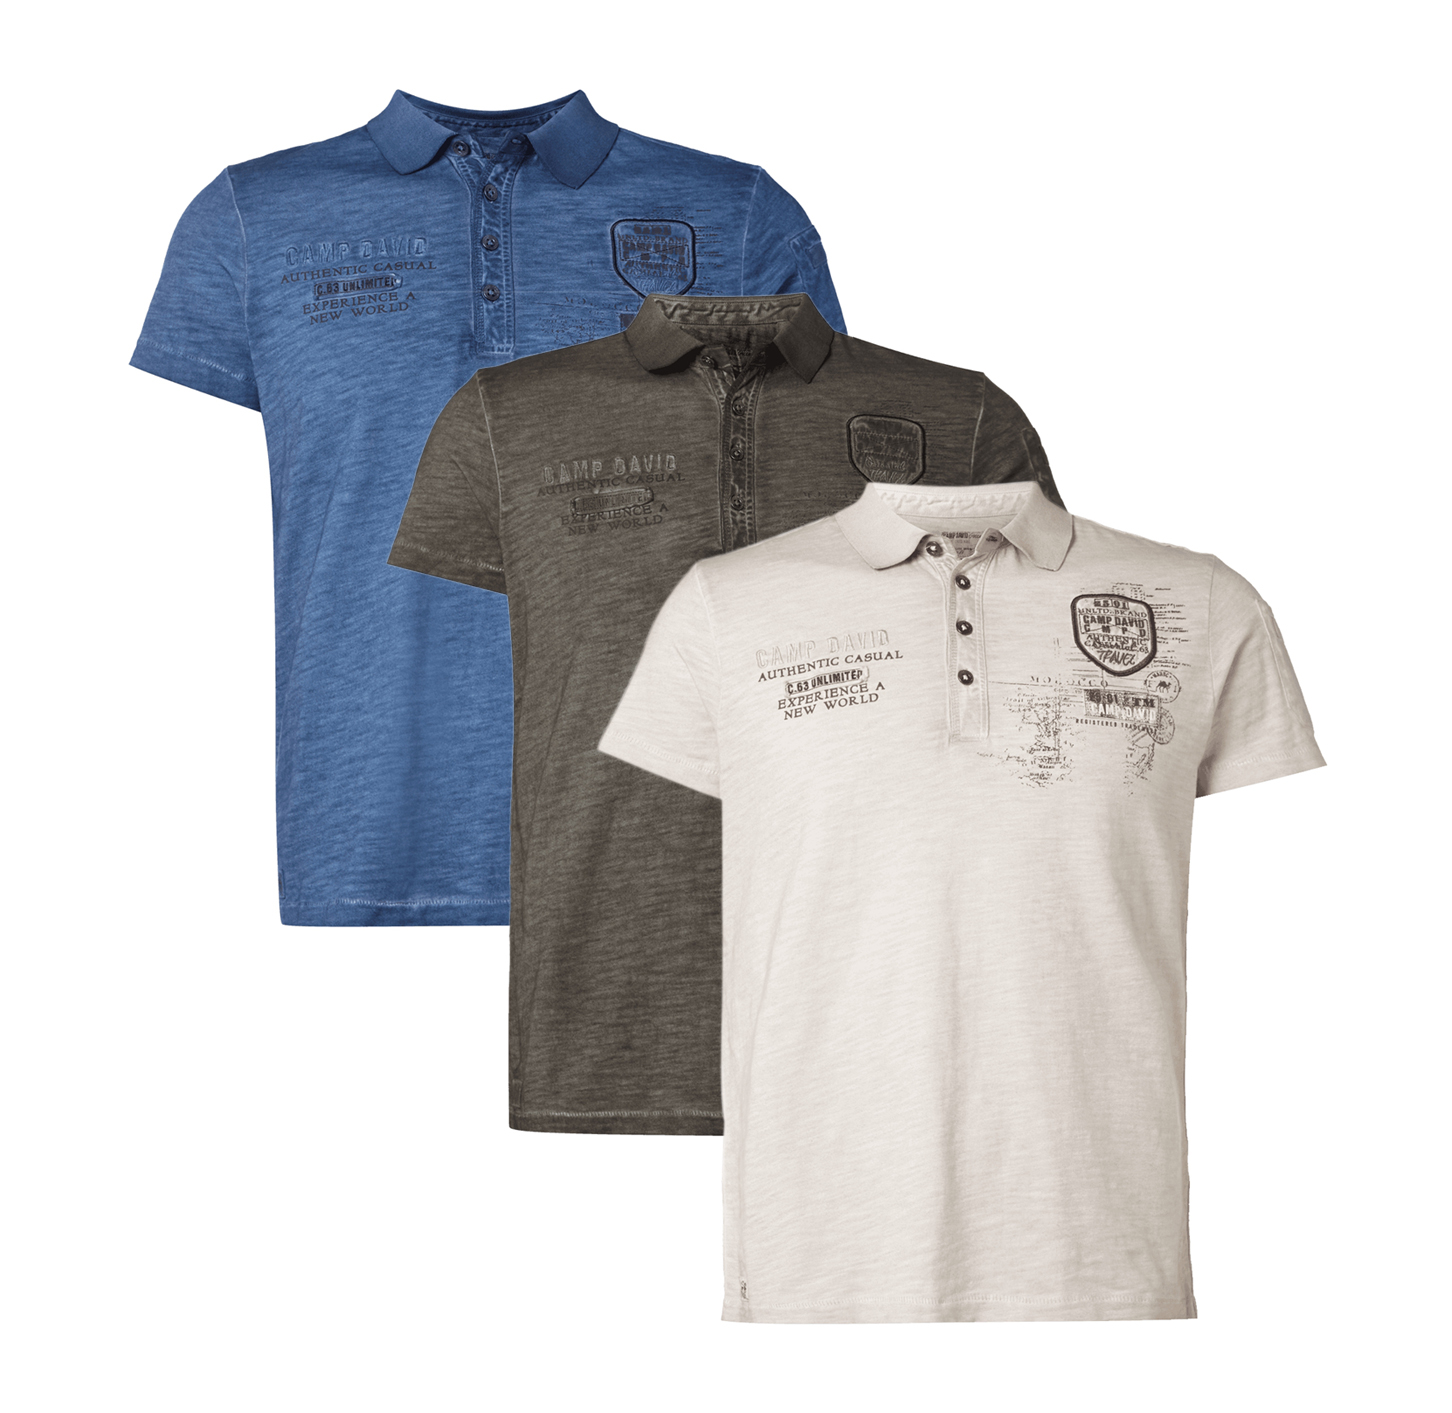 camp david poloshirt im washed out look herren polo neu ebay. Black Bedroom Furniture Sets. Home Design Ideas